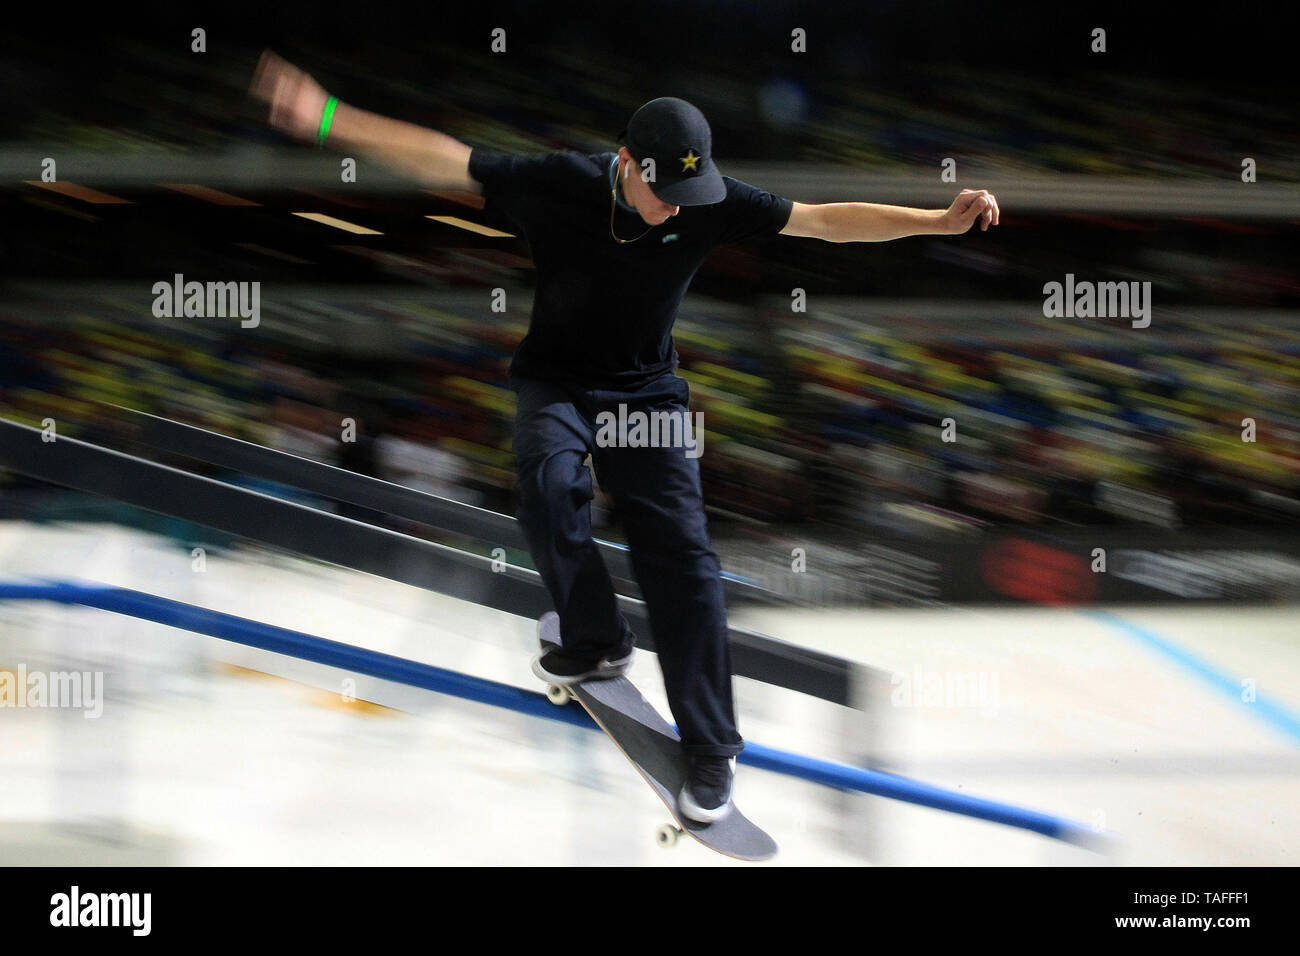 London, UK  24th May, 2019  A male skate boarder in action during